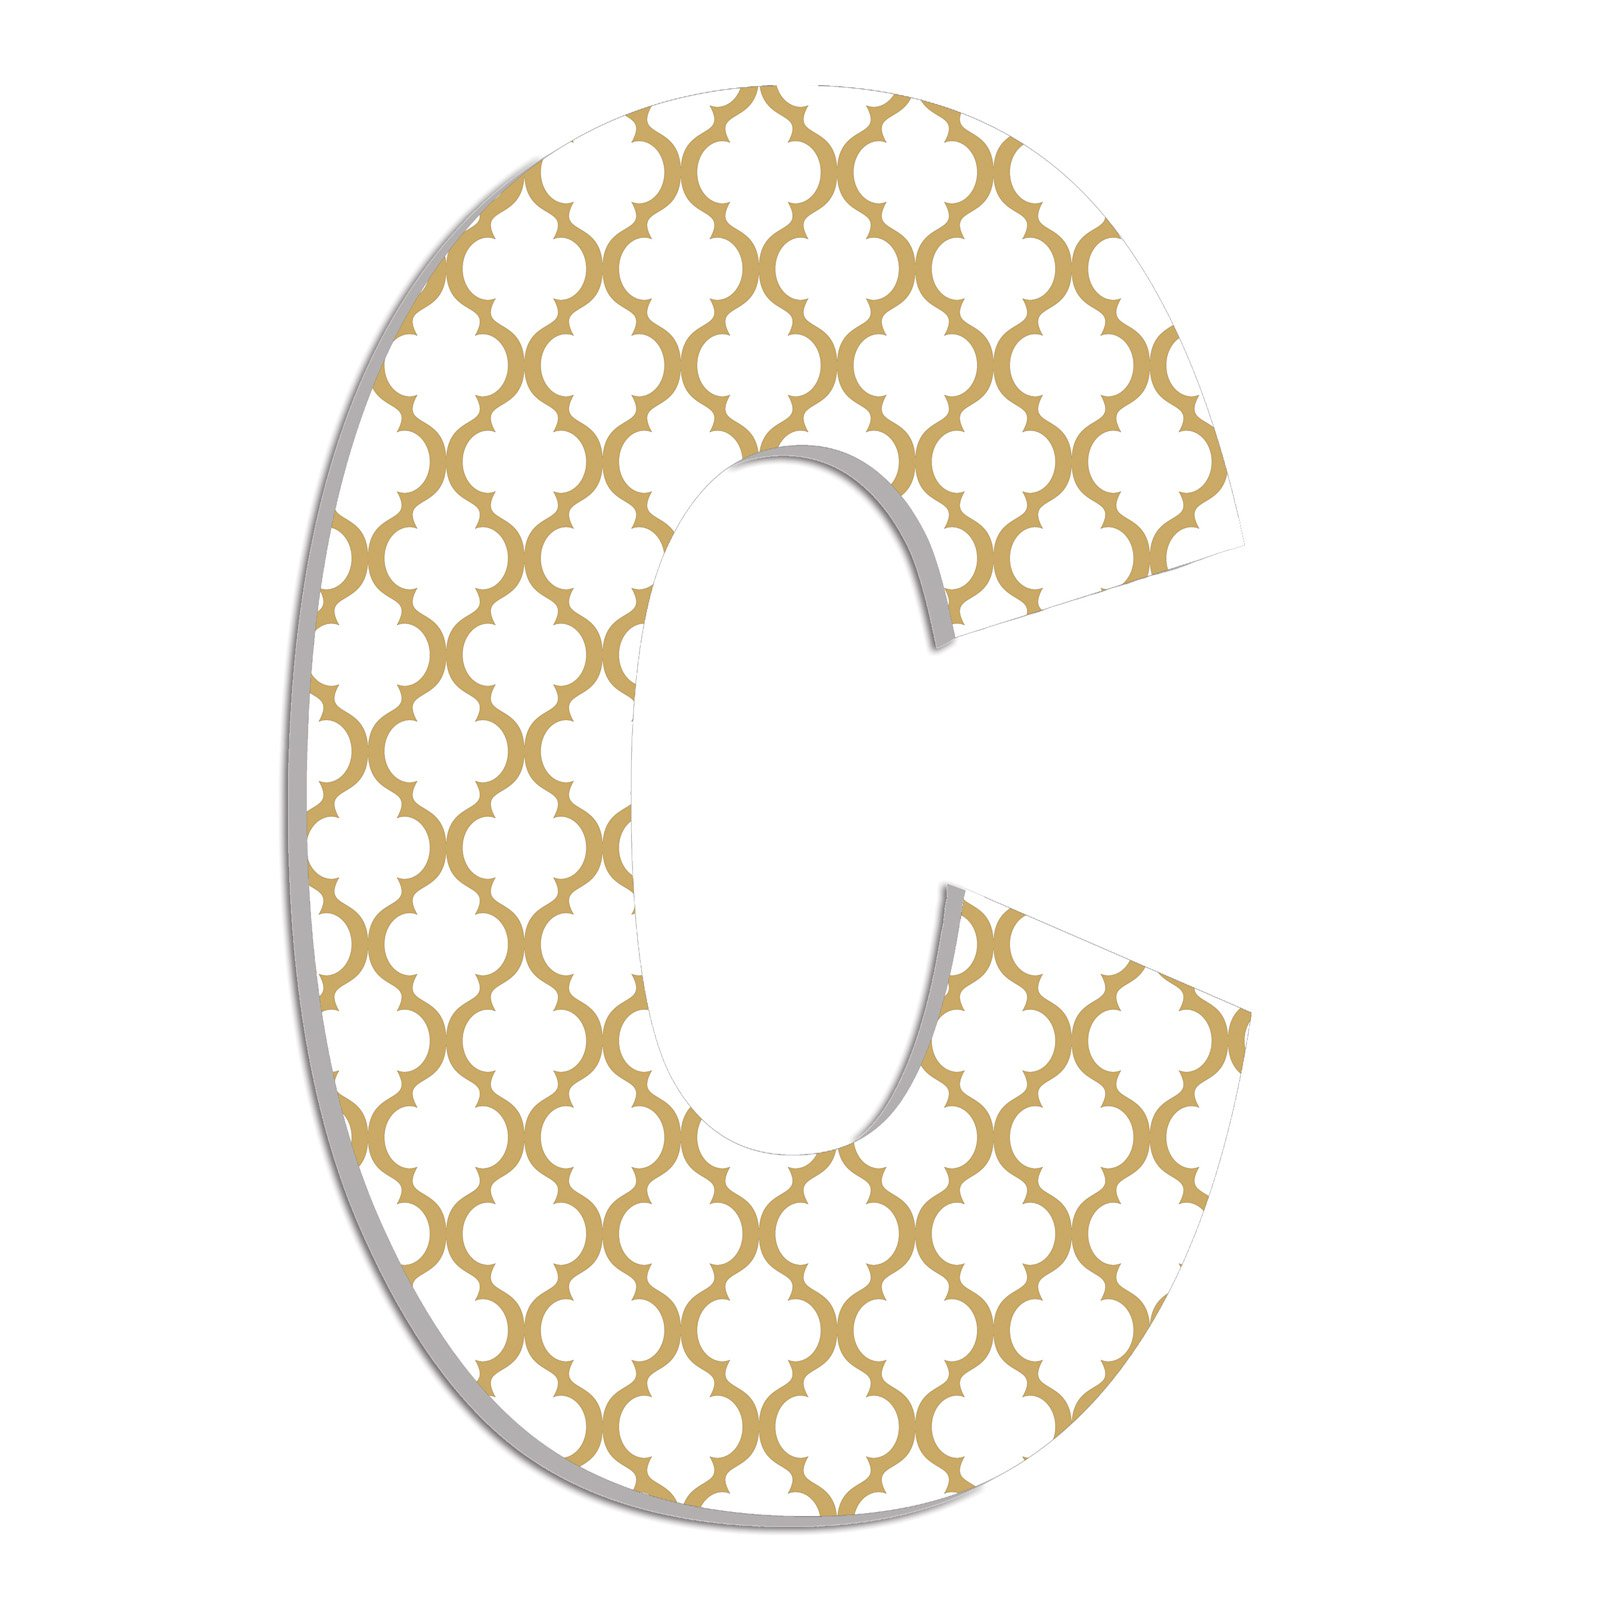 The Stupell Home Decor Collection Stupell Industries Oversized Gold Trellis Hanging Initial